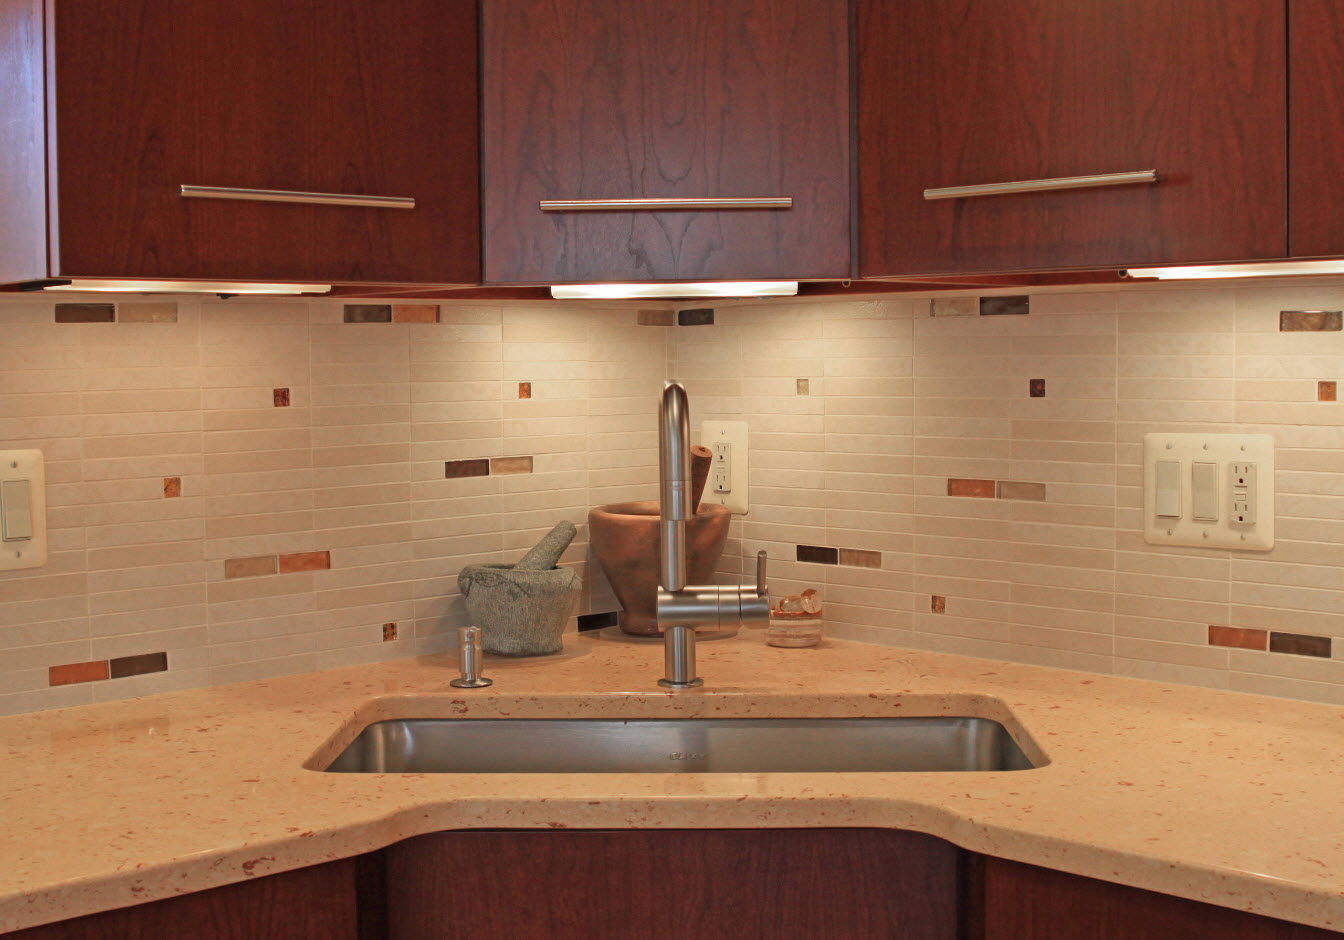 Modern style with dark wooden surfaces and large stainless steel sink